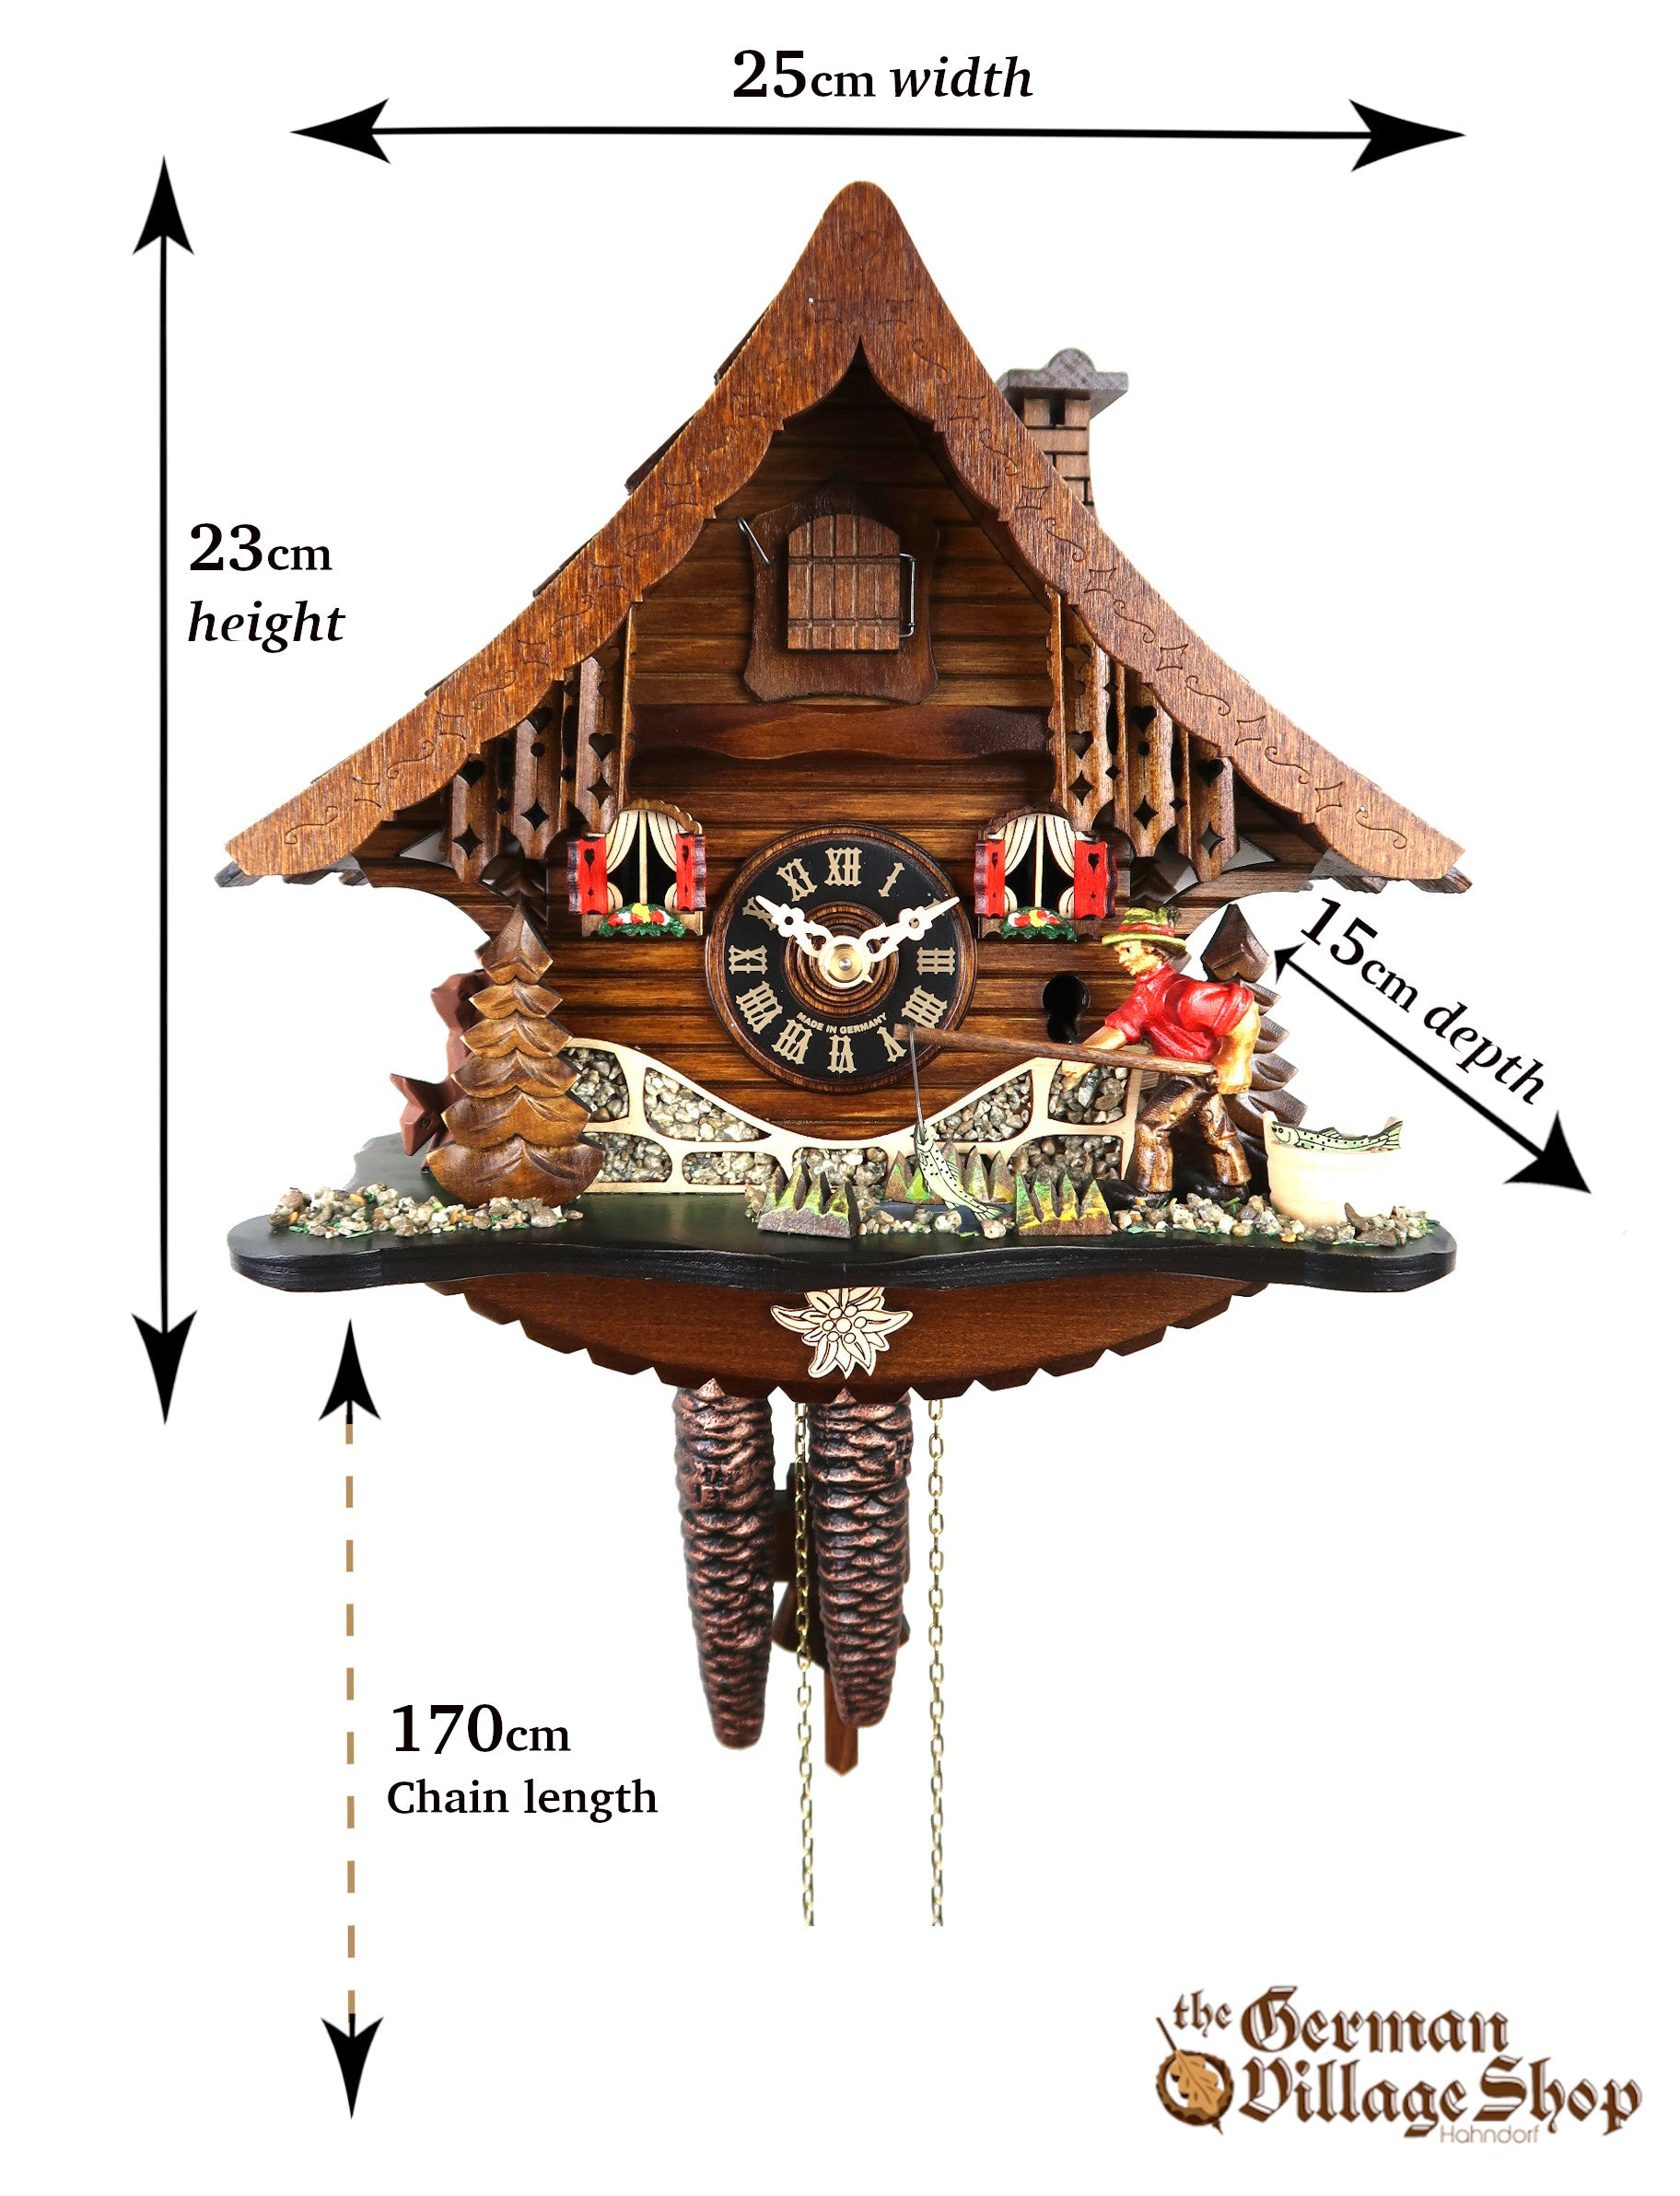 Size of German Cuckoo clock imported and for sale in Australia